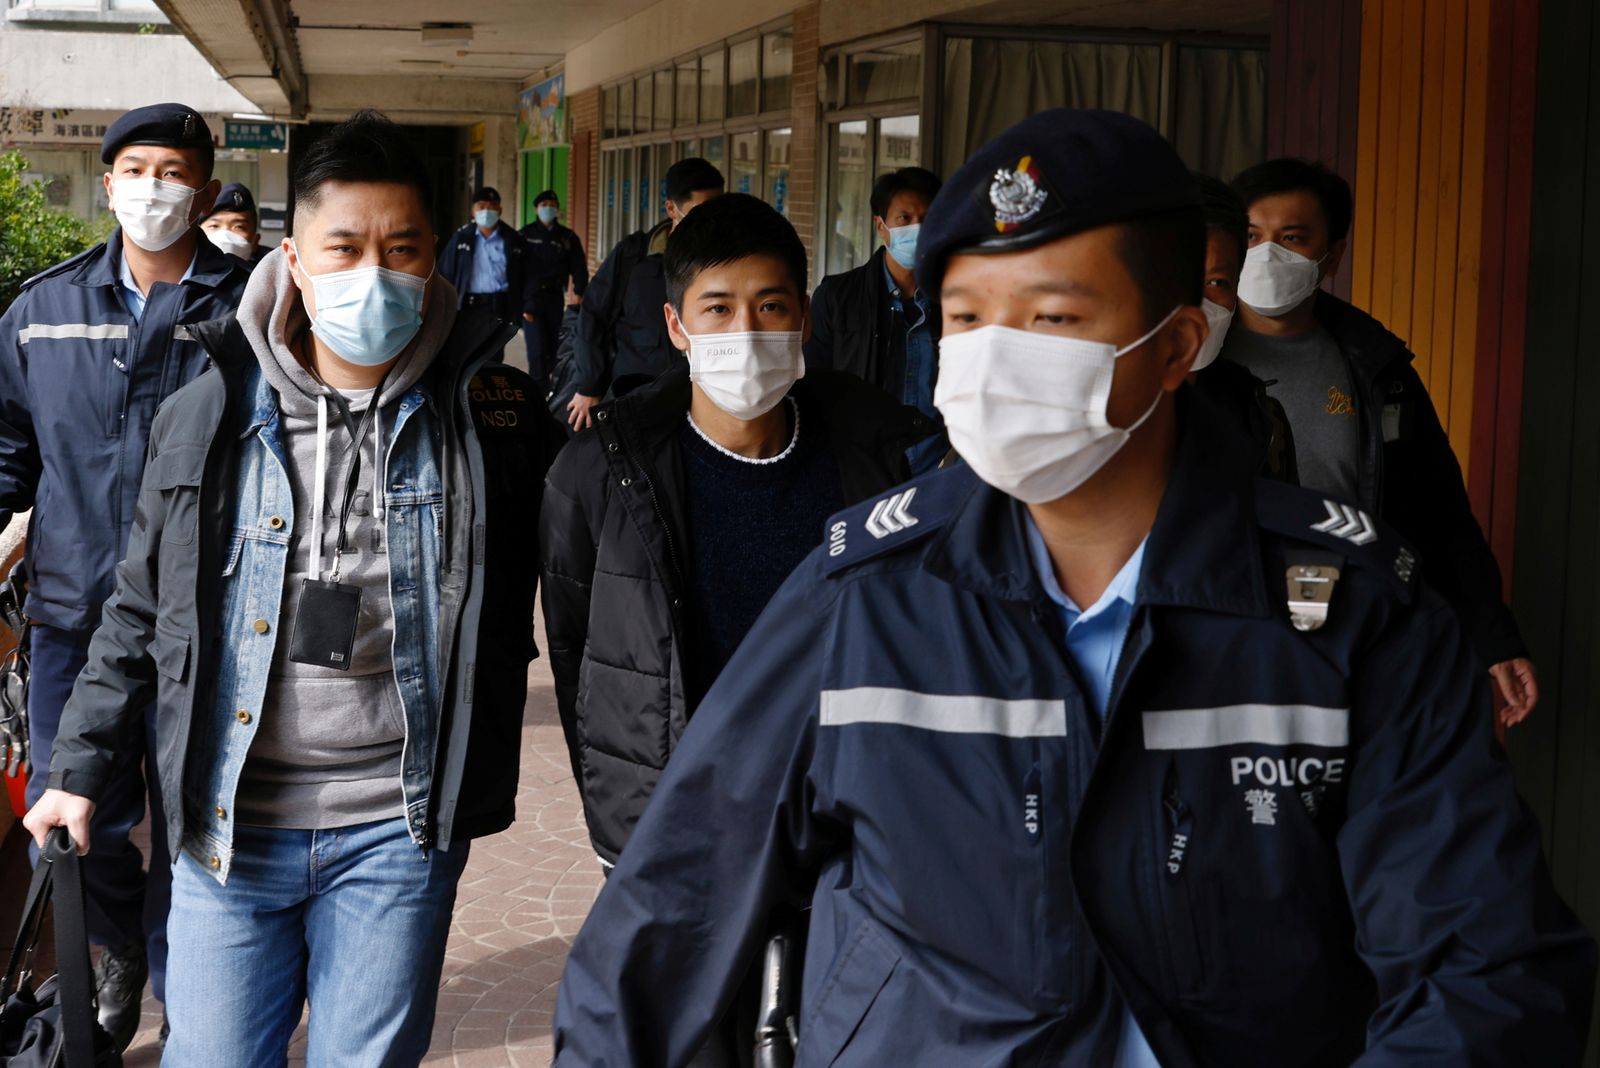 Pro-democracy activist Lester Shum is taken away by police officers in Hong Kong